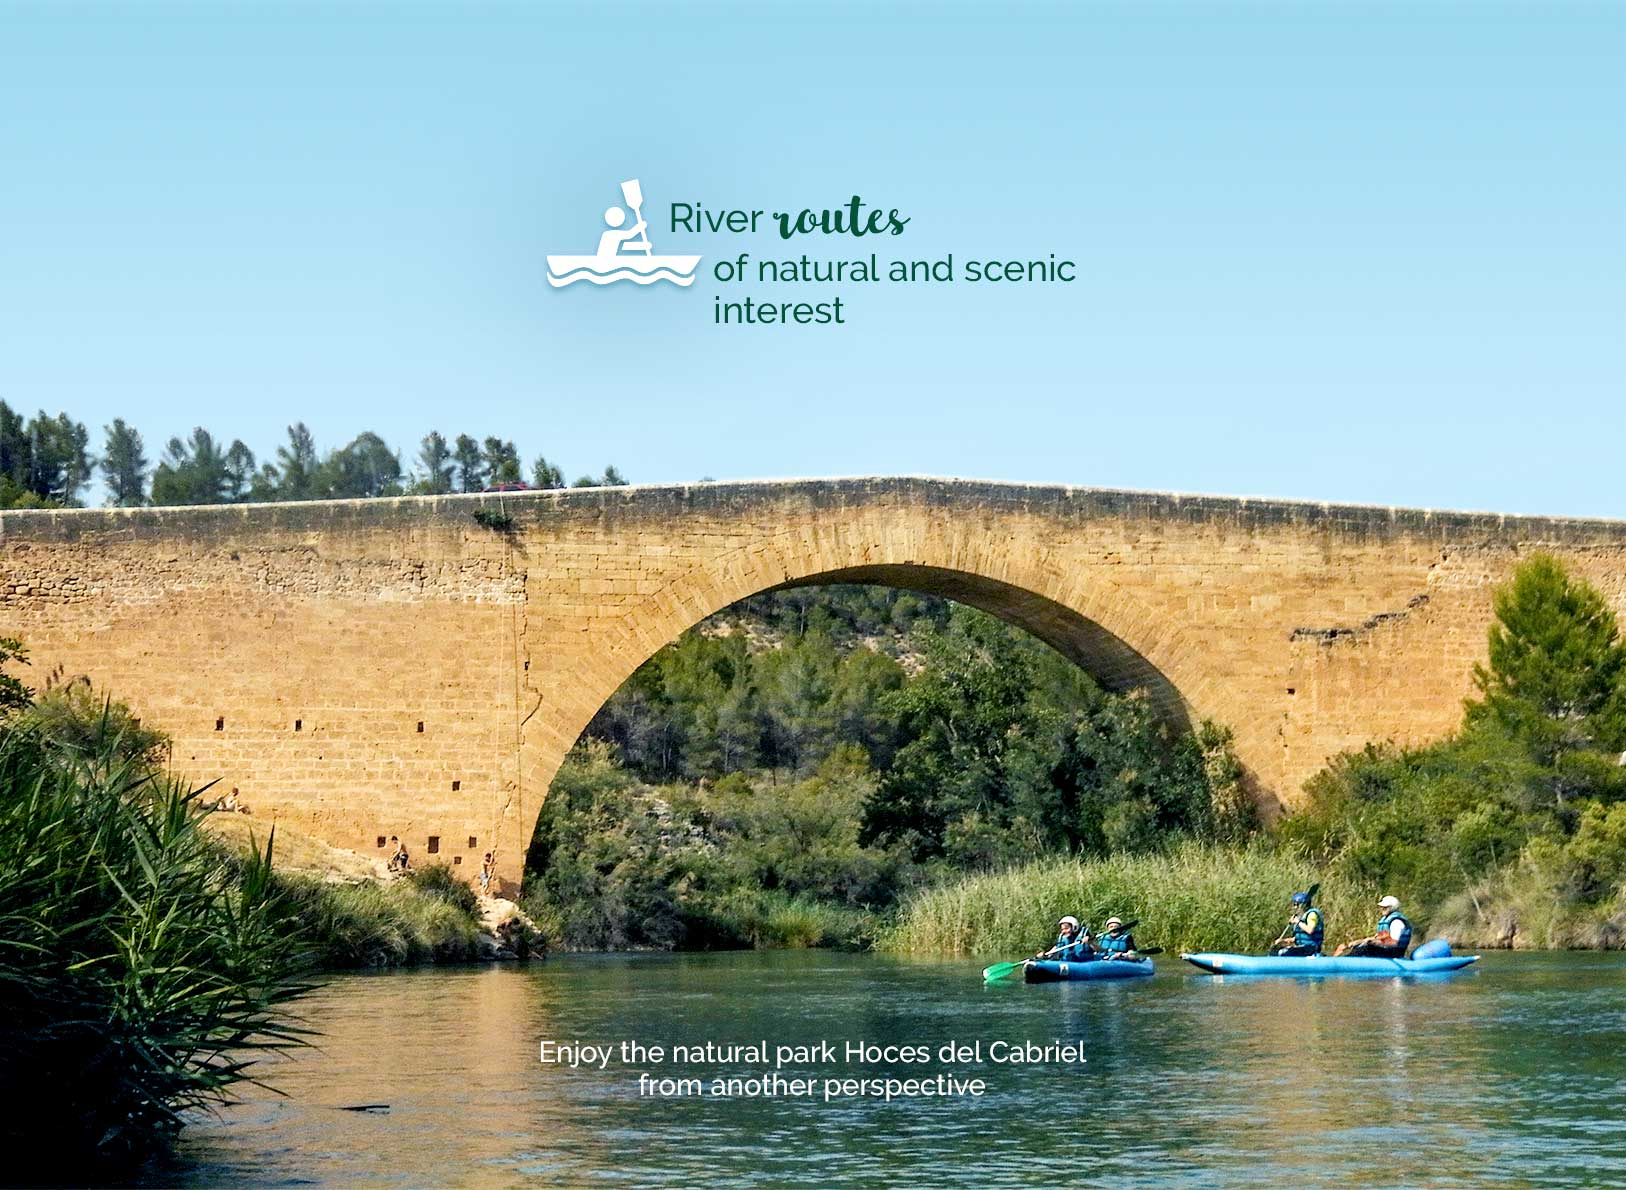 River routes of natural and scenic interest.